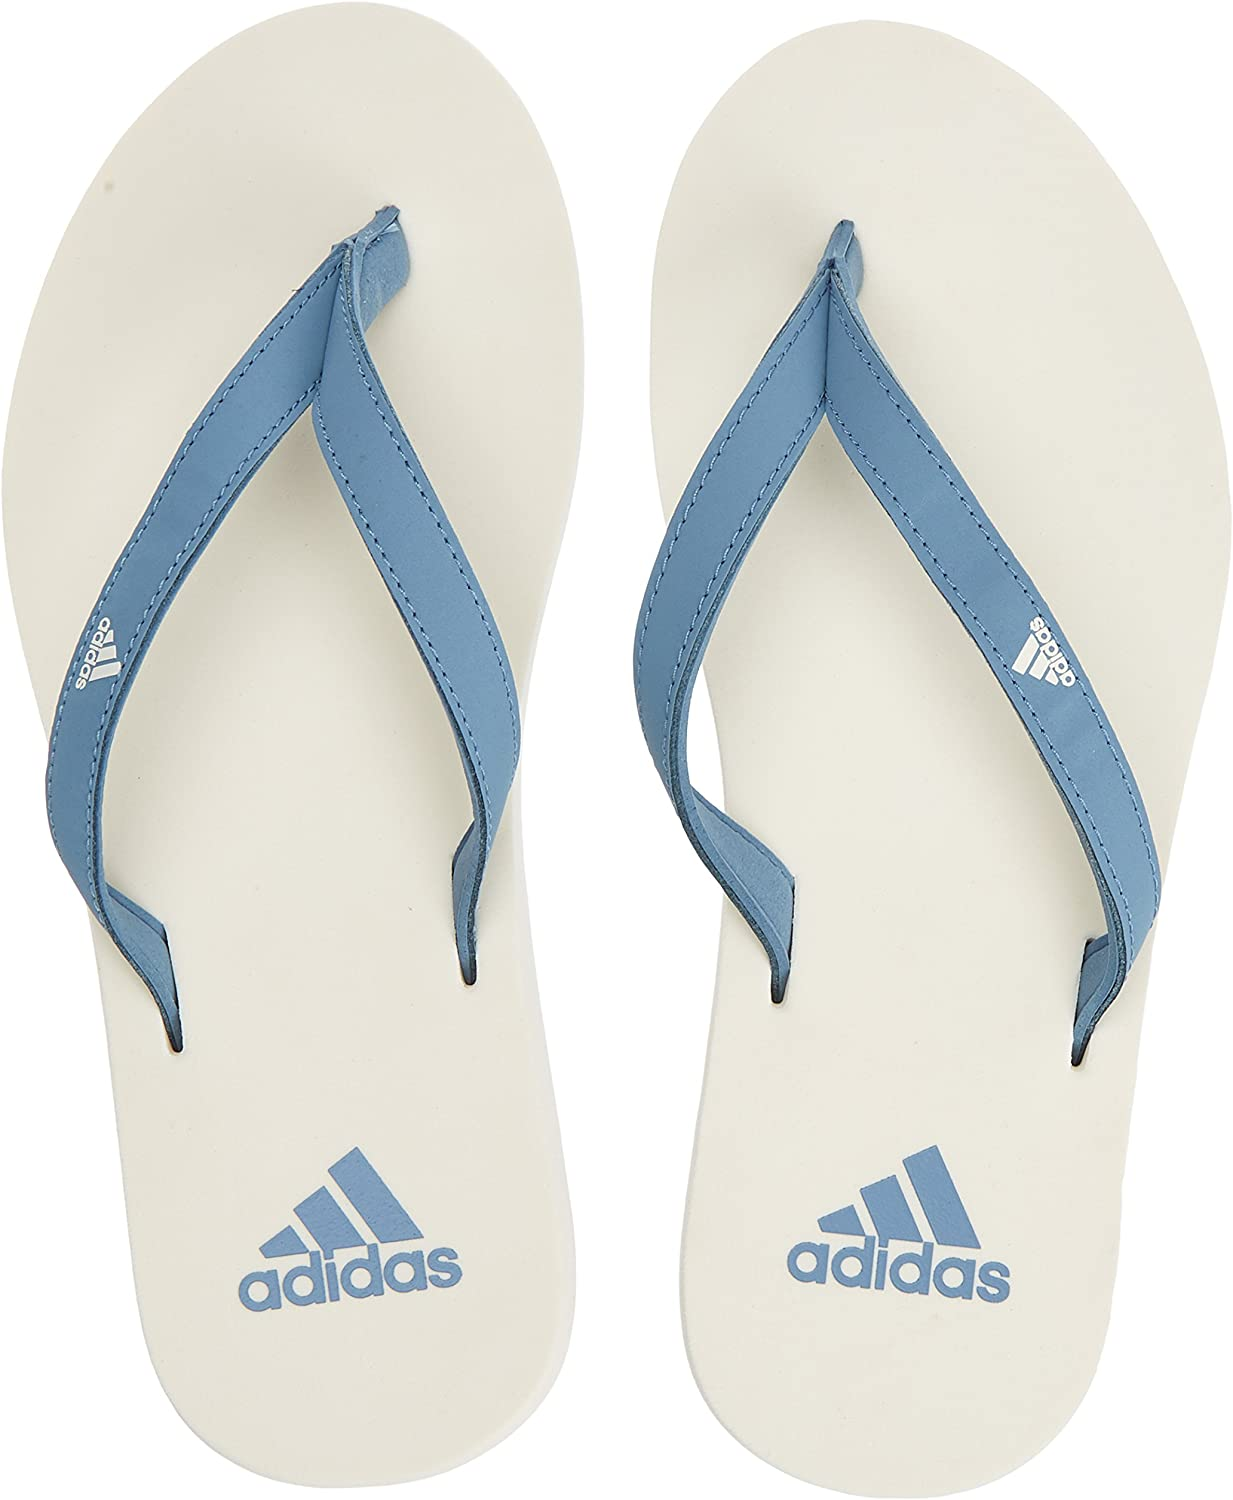 Adidas Women Swimming Eezay Flip-Flops Pool Beach Sandals Tong CG3558 Sporty